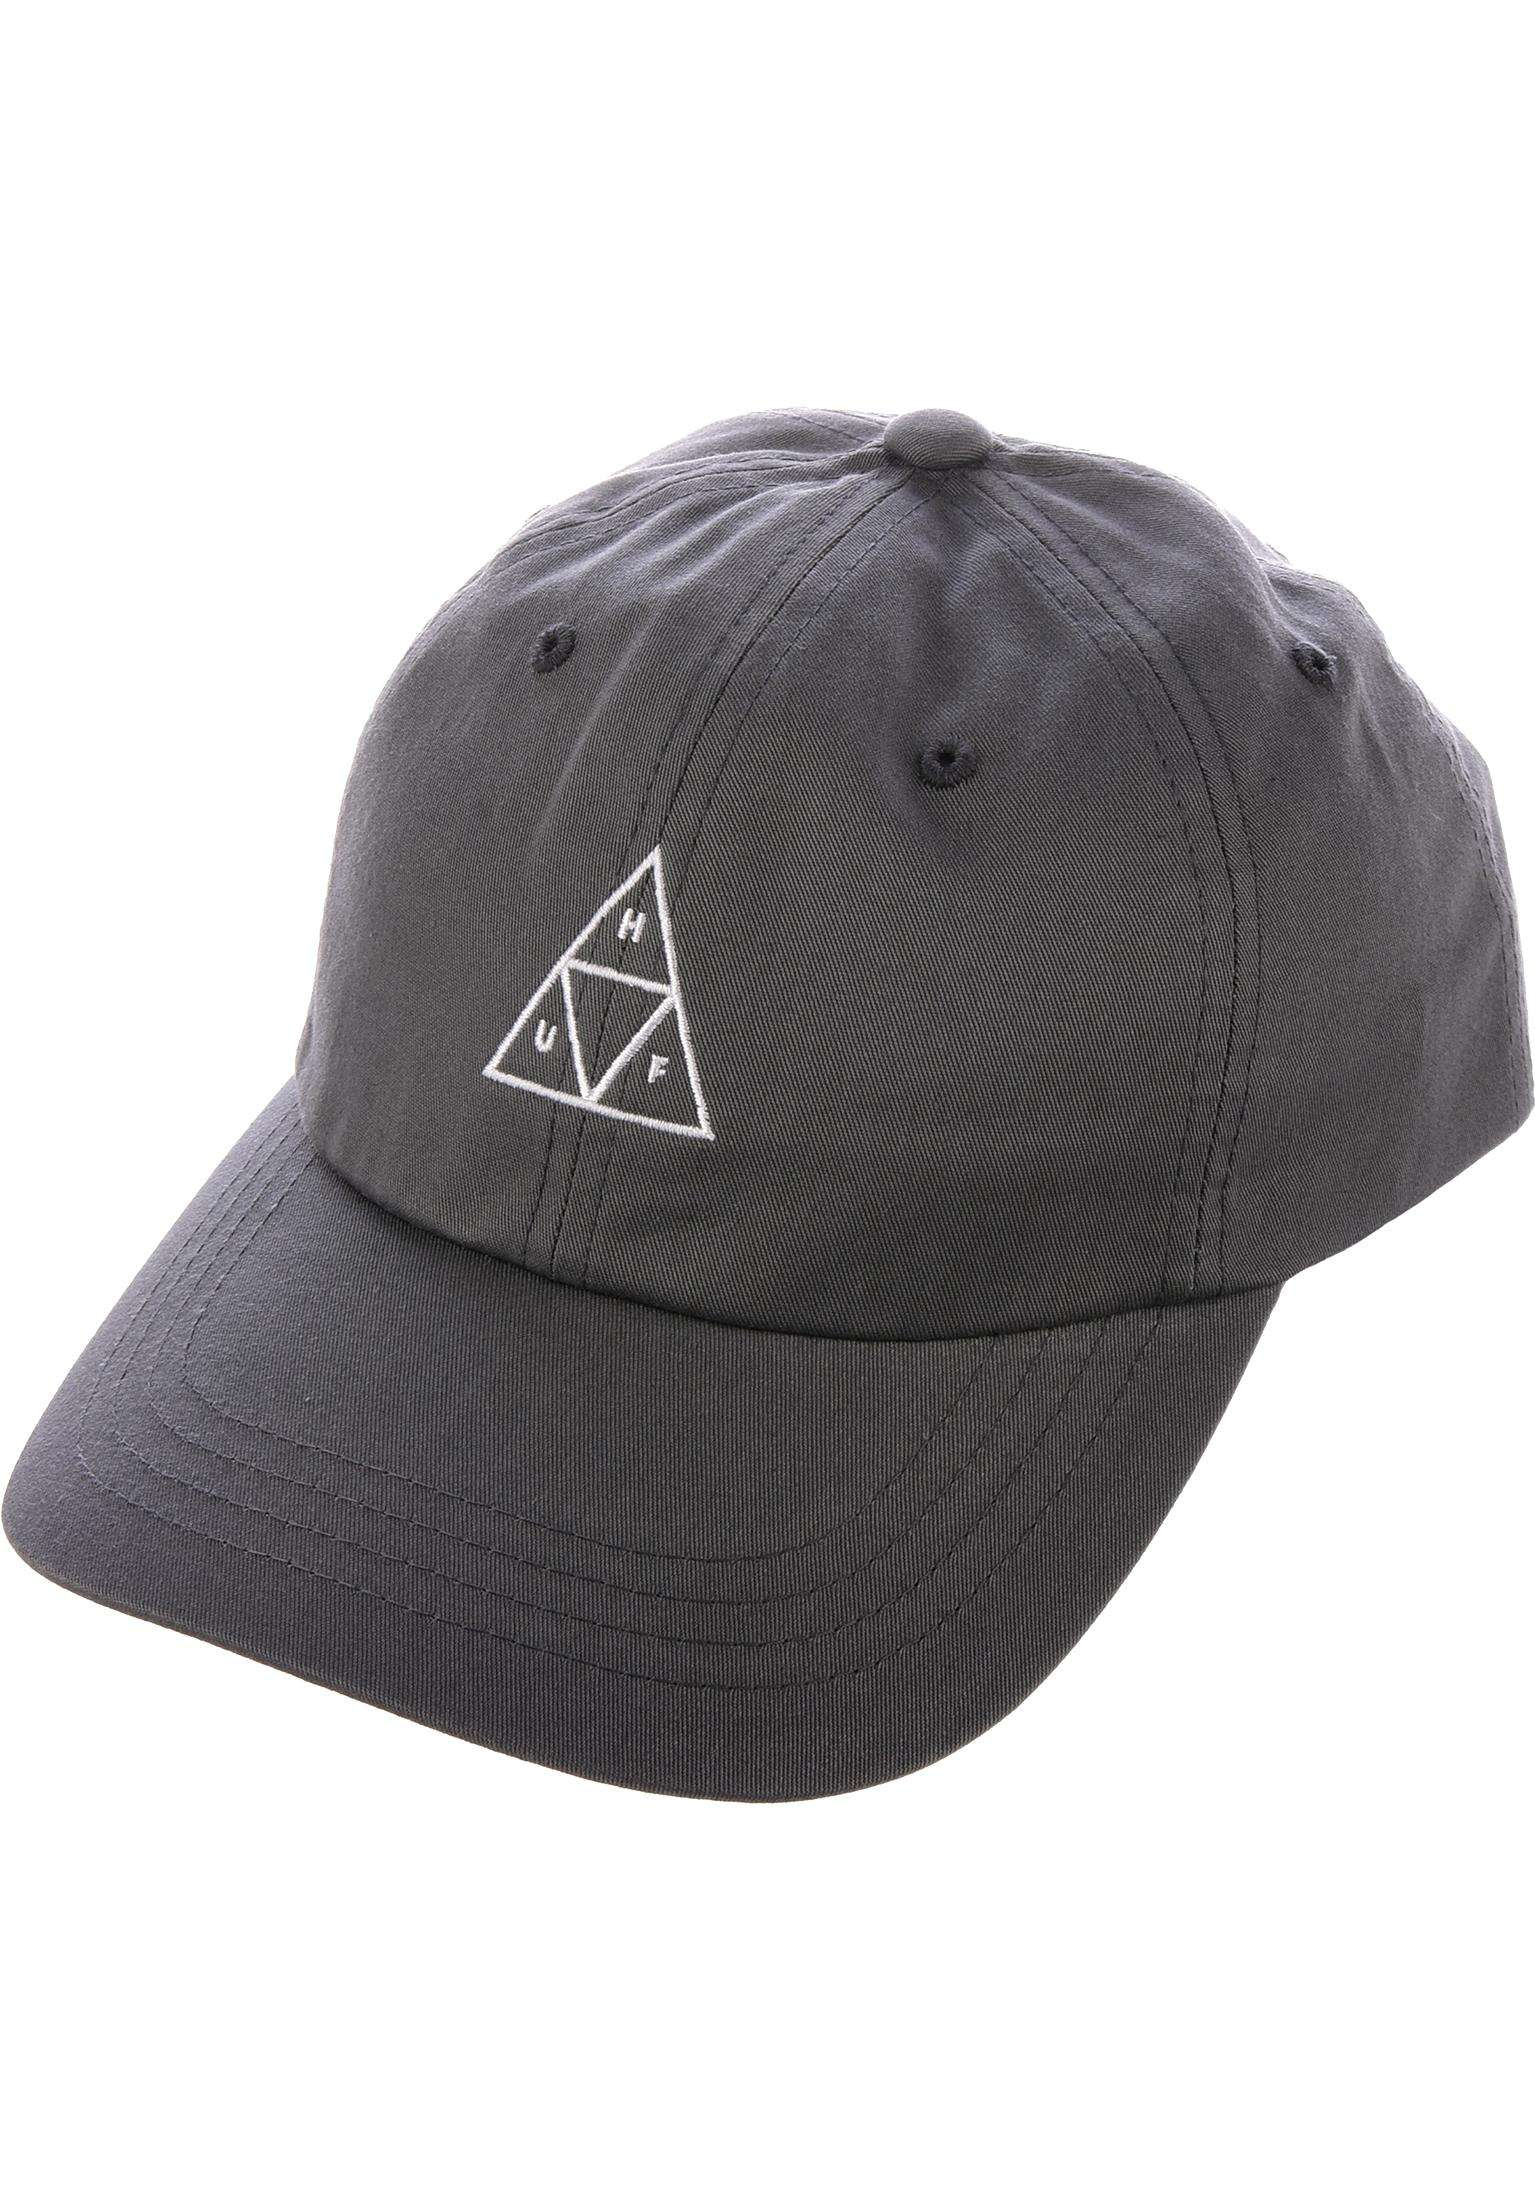 834d1bb5744a5 Triple Triangle Curved Visor Dad Hat HUF Cappellini in charcoal da Uomo